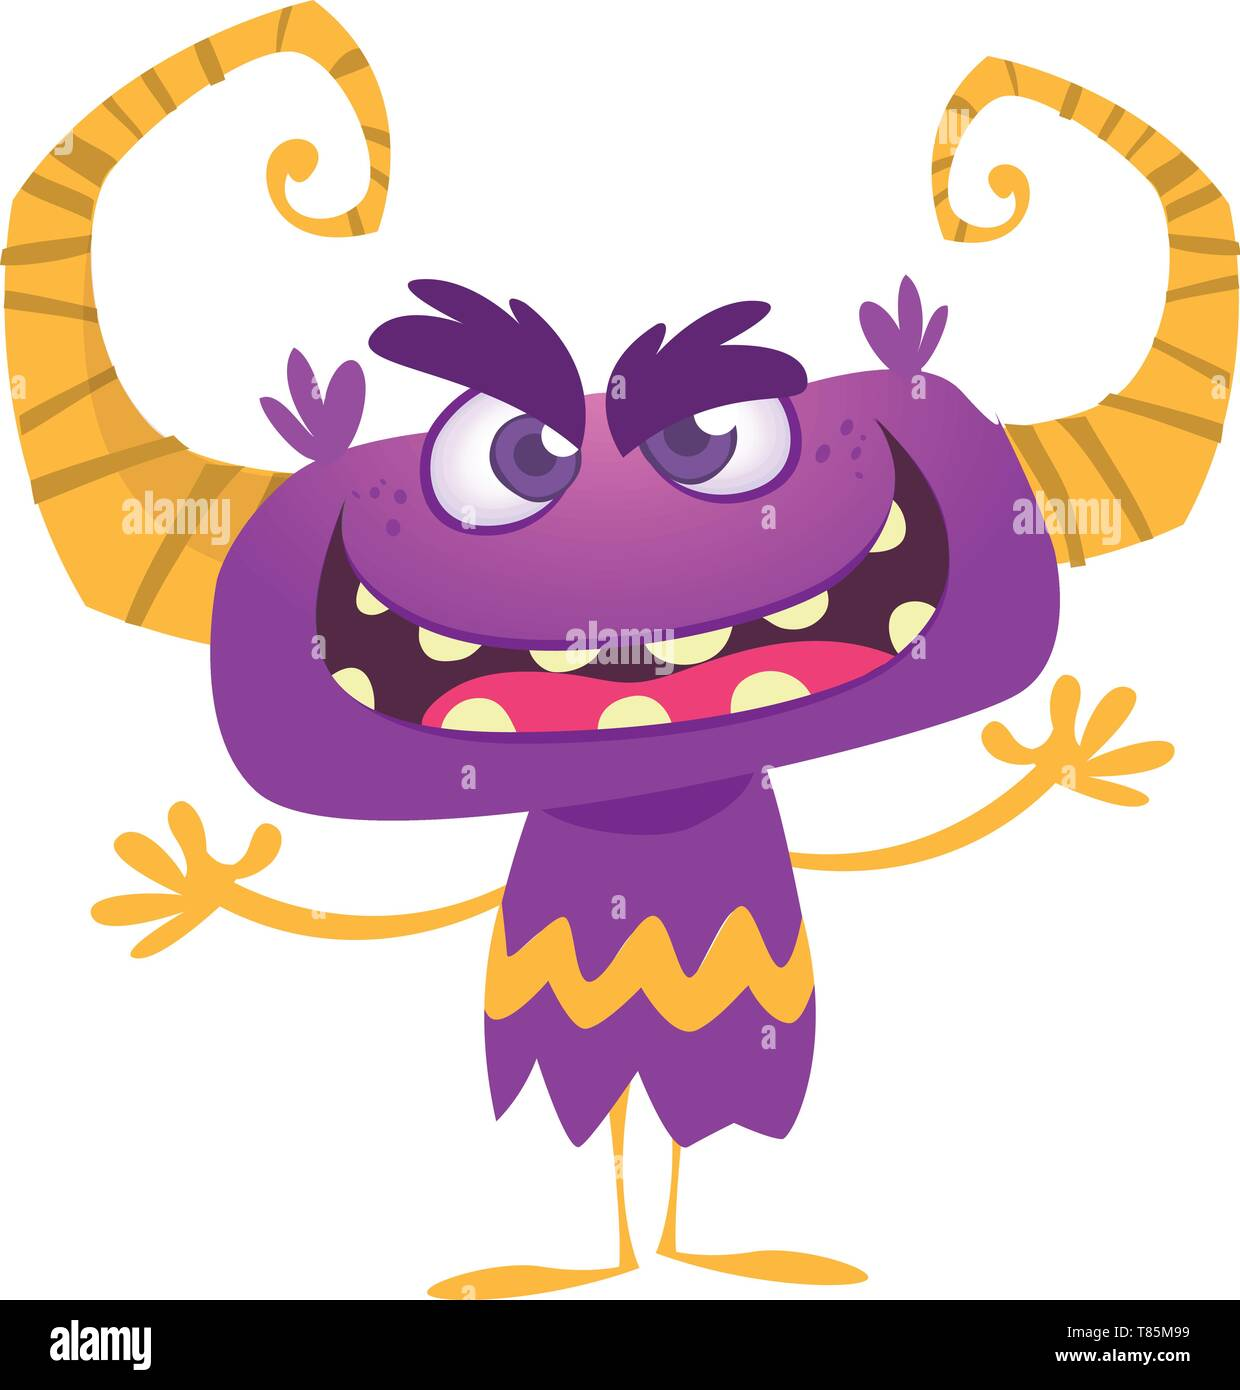 Angry cartoon monster. Vector illustration for Halloween party decoration. Postcard design - Stock Image